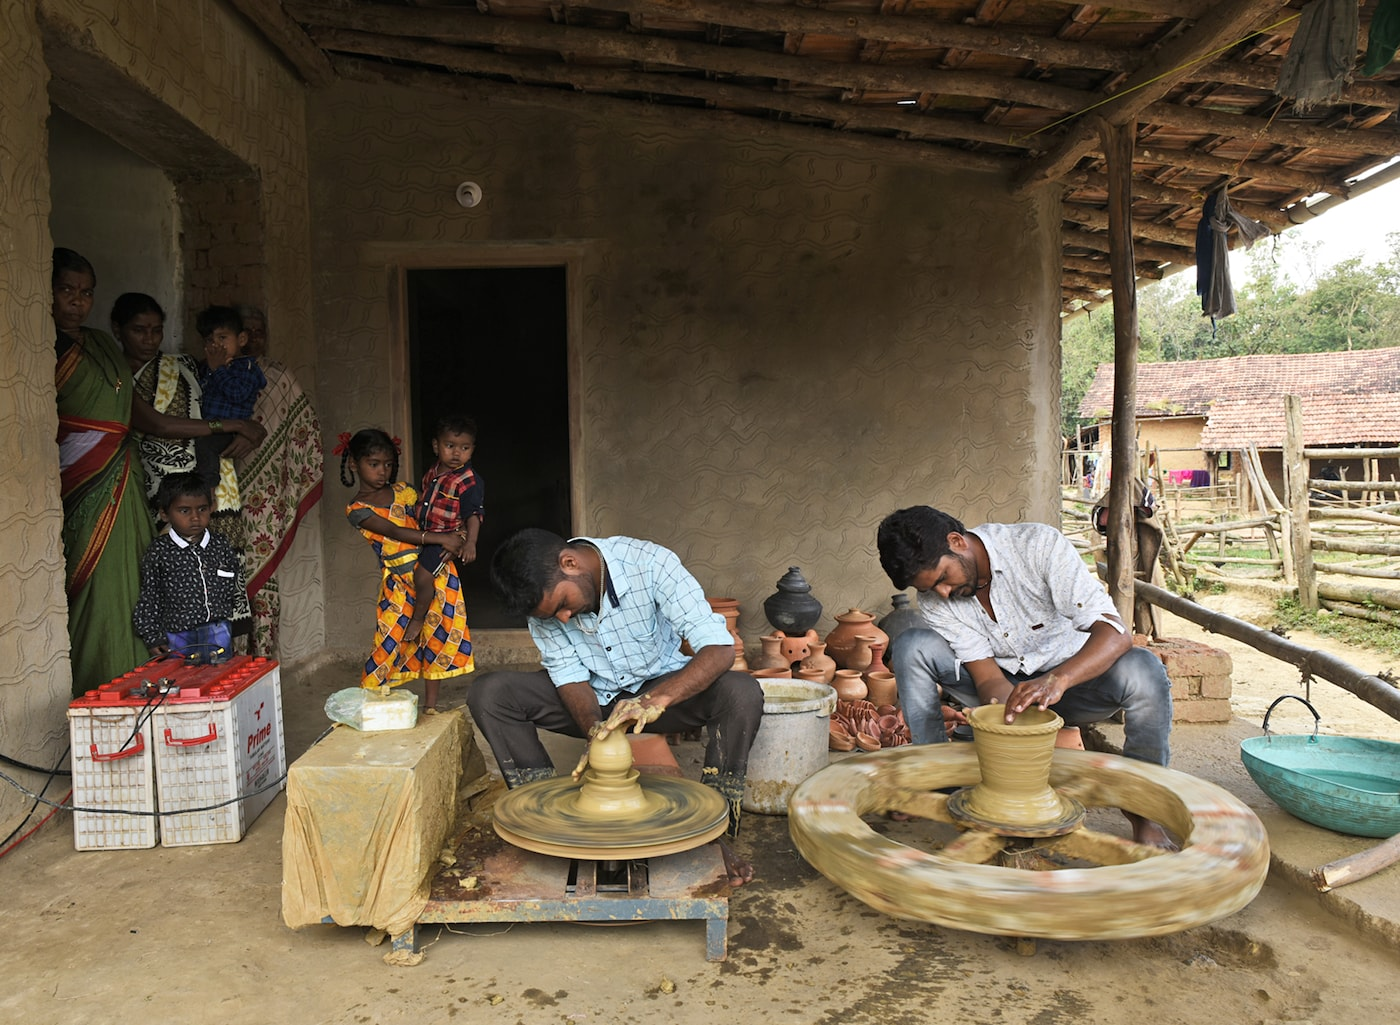 Two Indian potters working on their potting wheels while being observed by other villagers.